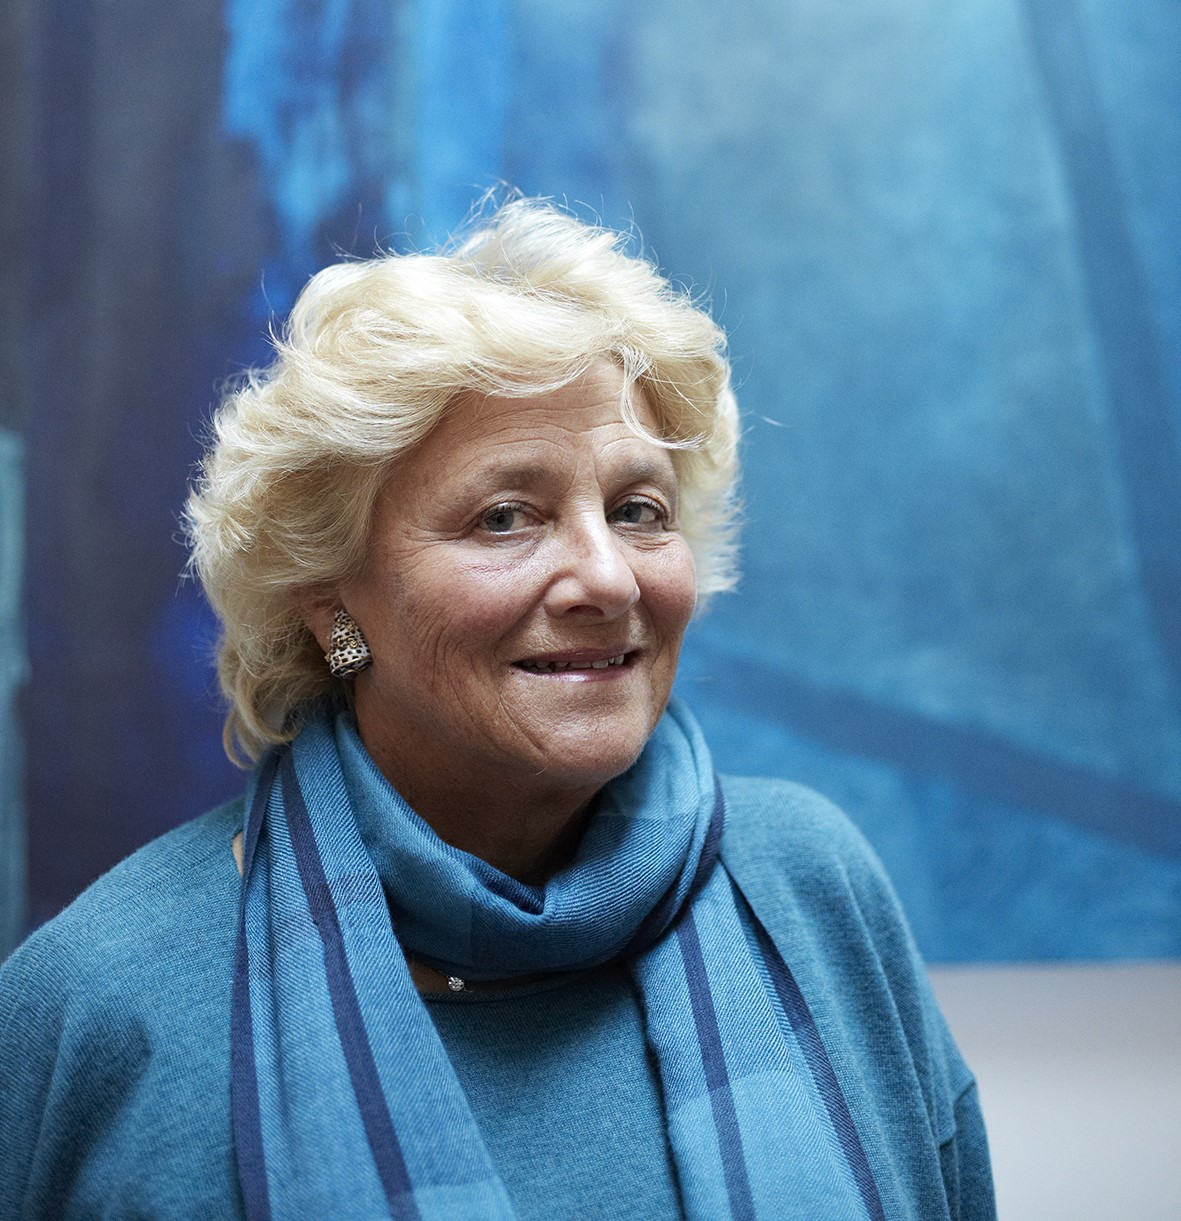 Philanthropist Vivien Duffield initiated the JW3 project with a $56 million grant. (Maria Spann)